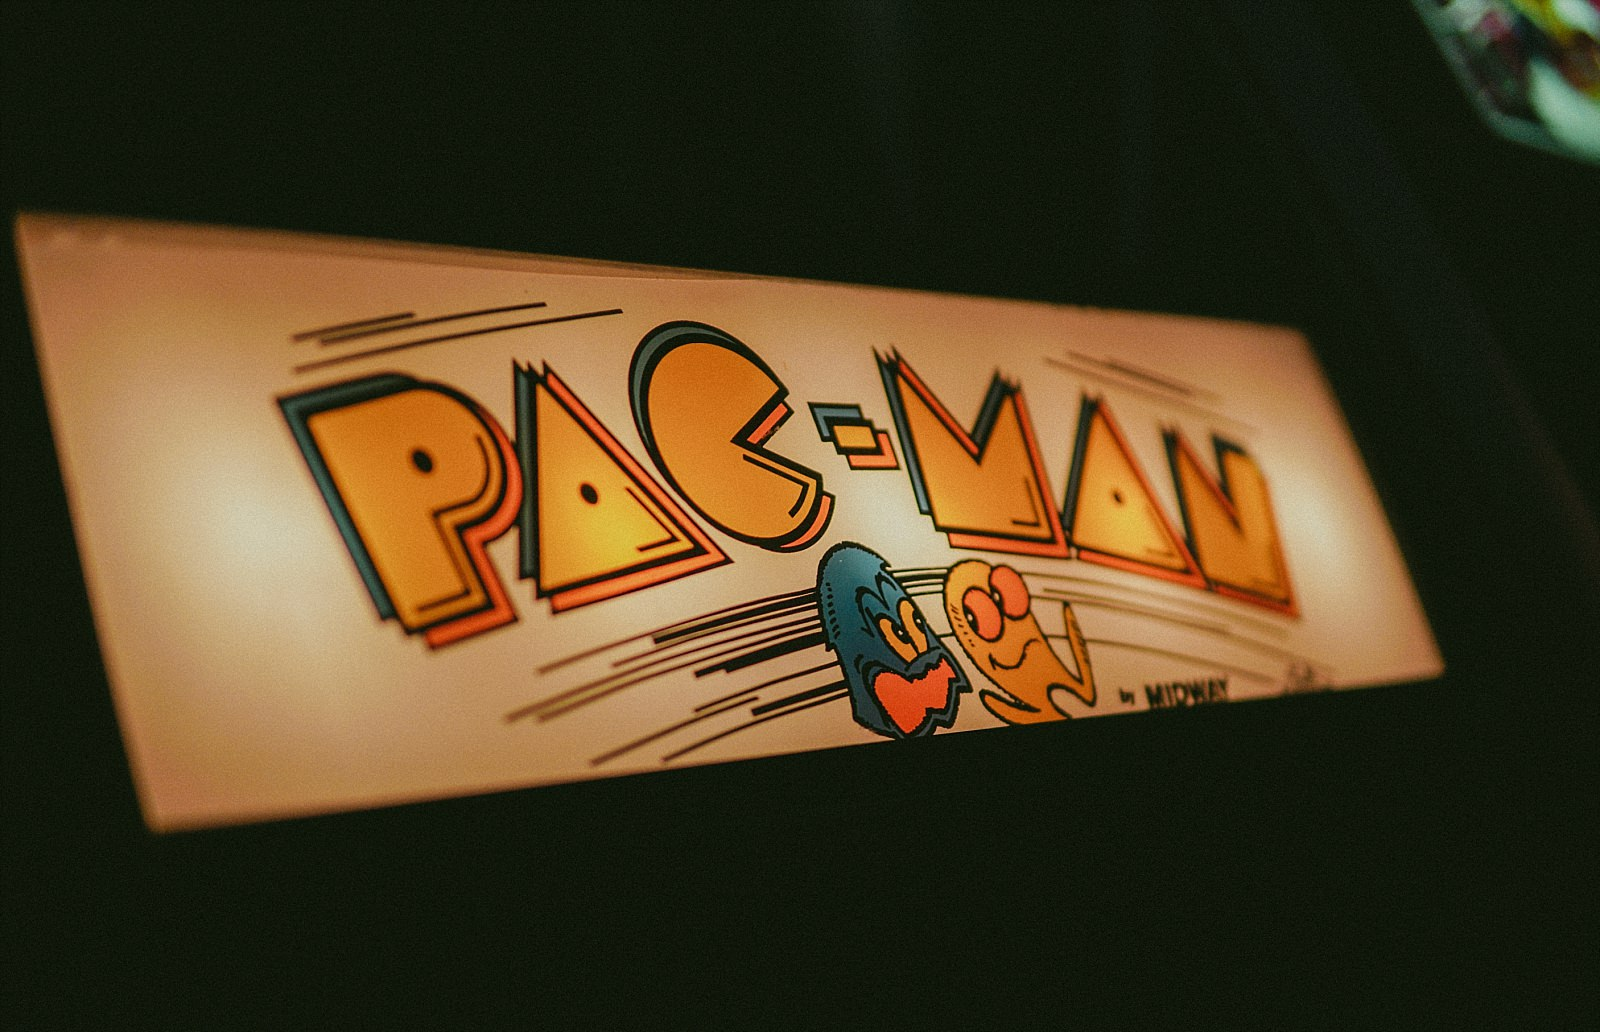 pacman logo on arcade machine